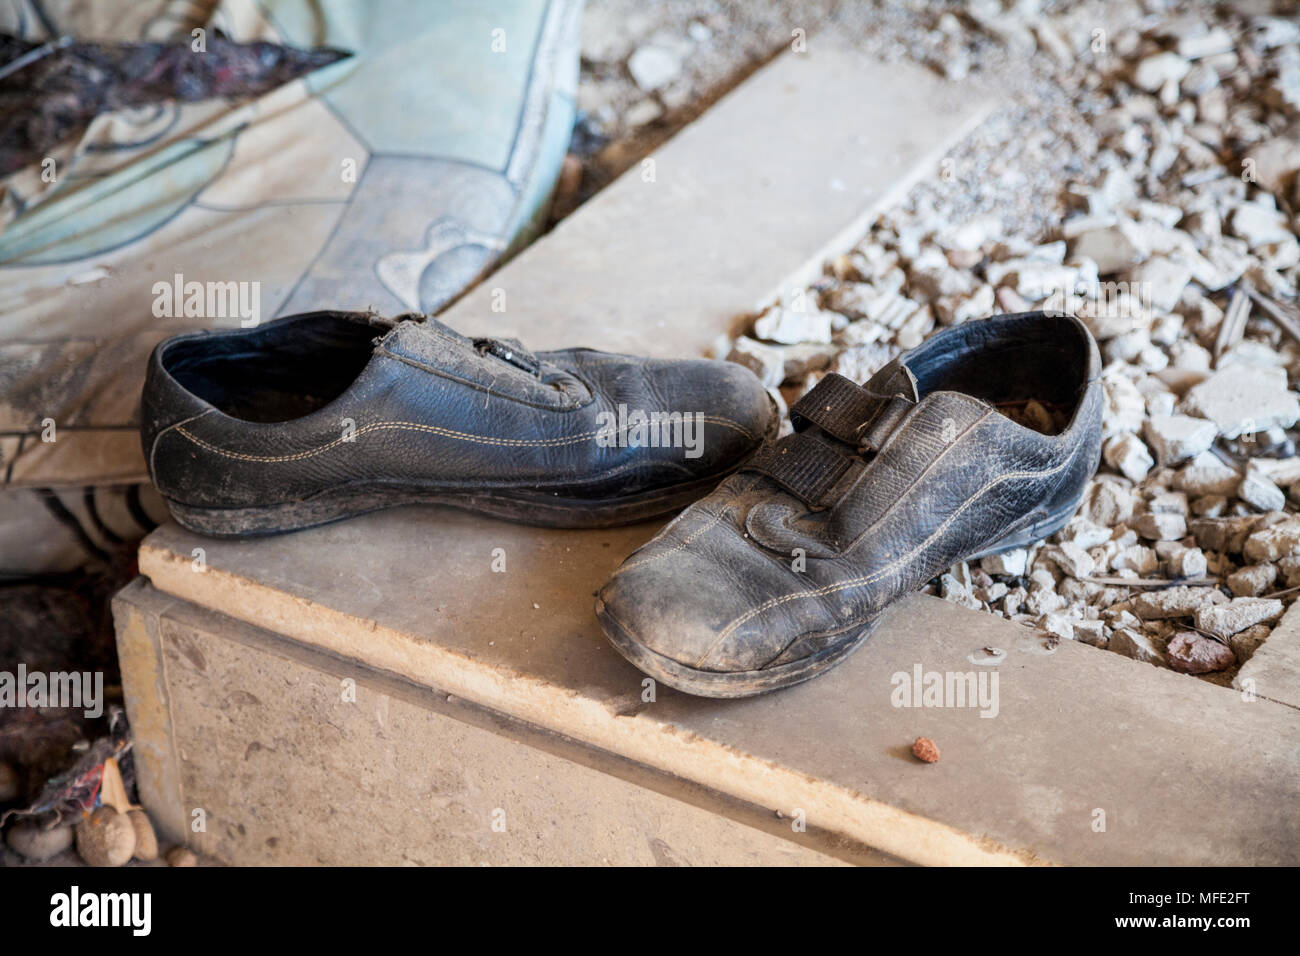 Close up of some shoes in an abandoned, bombed out building due to the Bosnian War in Mostar, Bosnia and Herzegovina - Stock Image